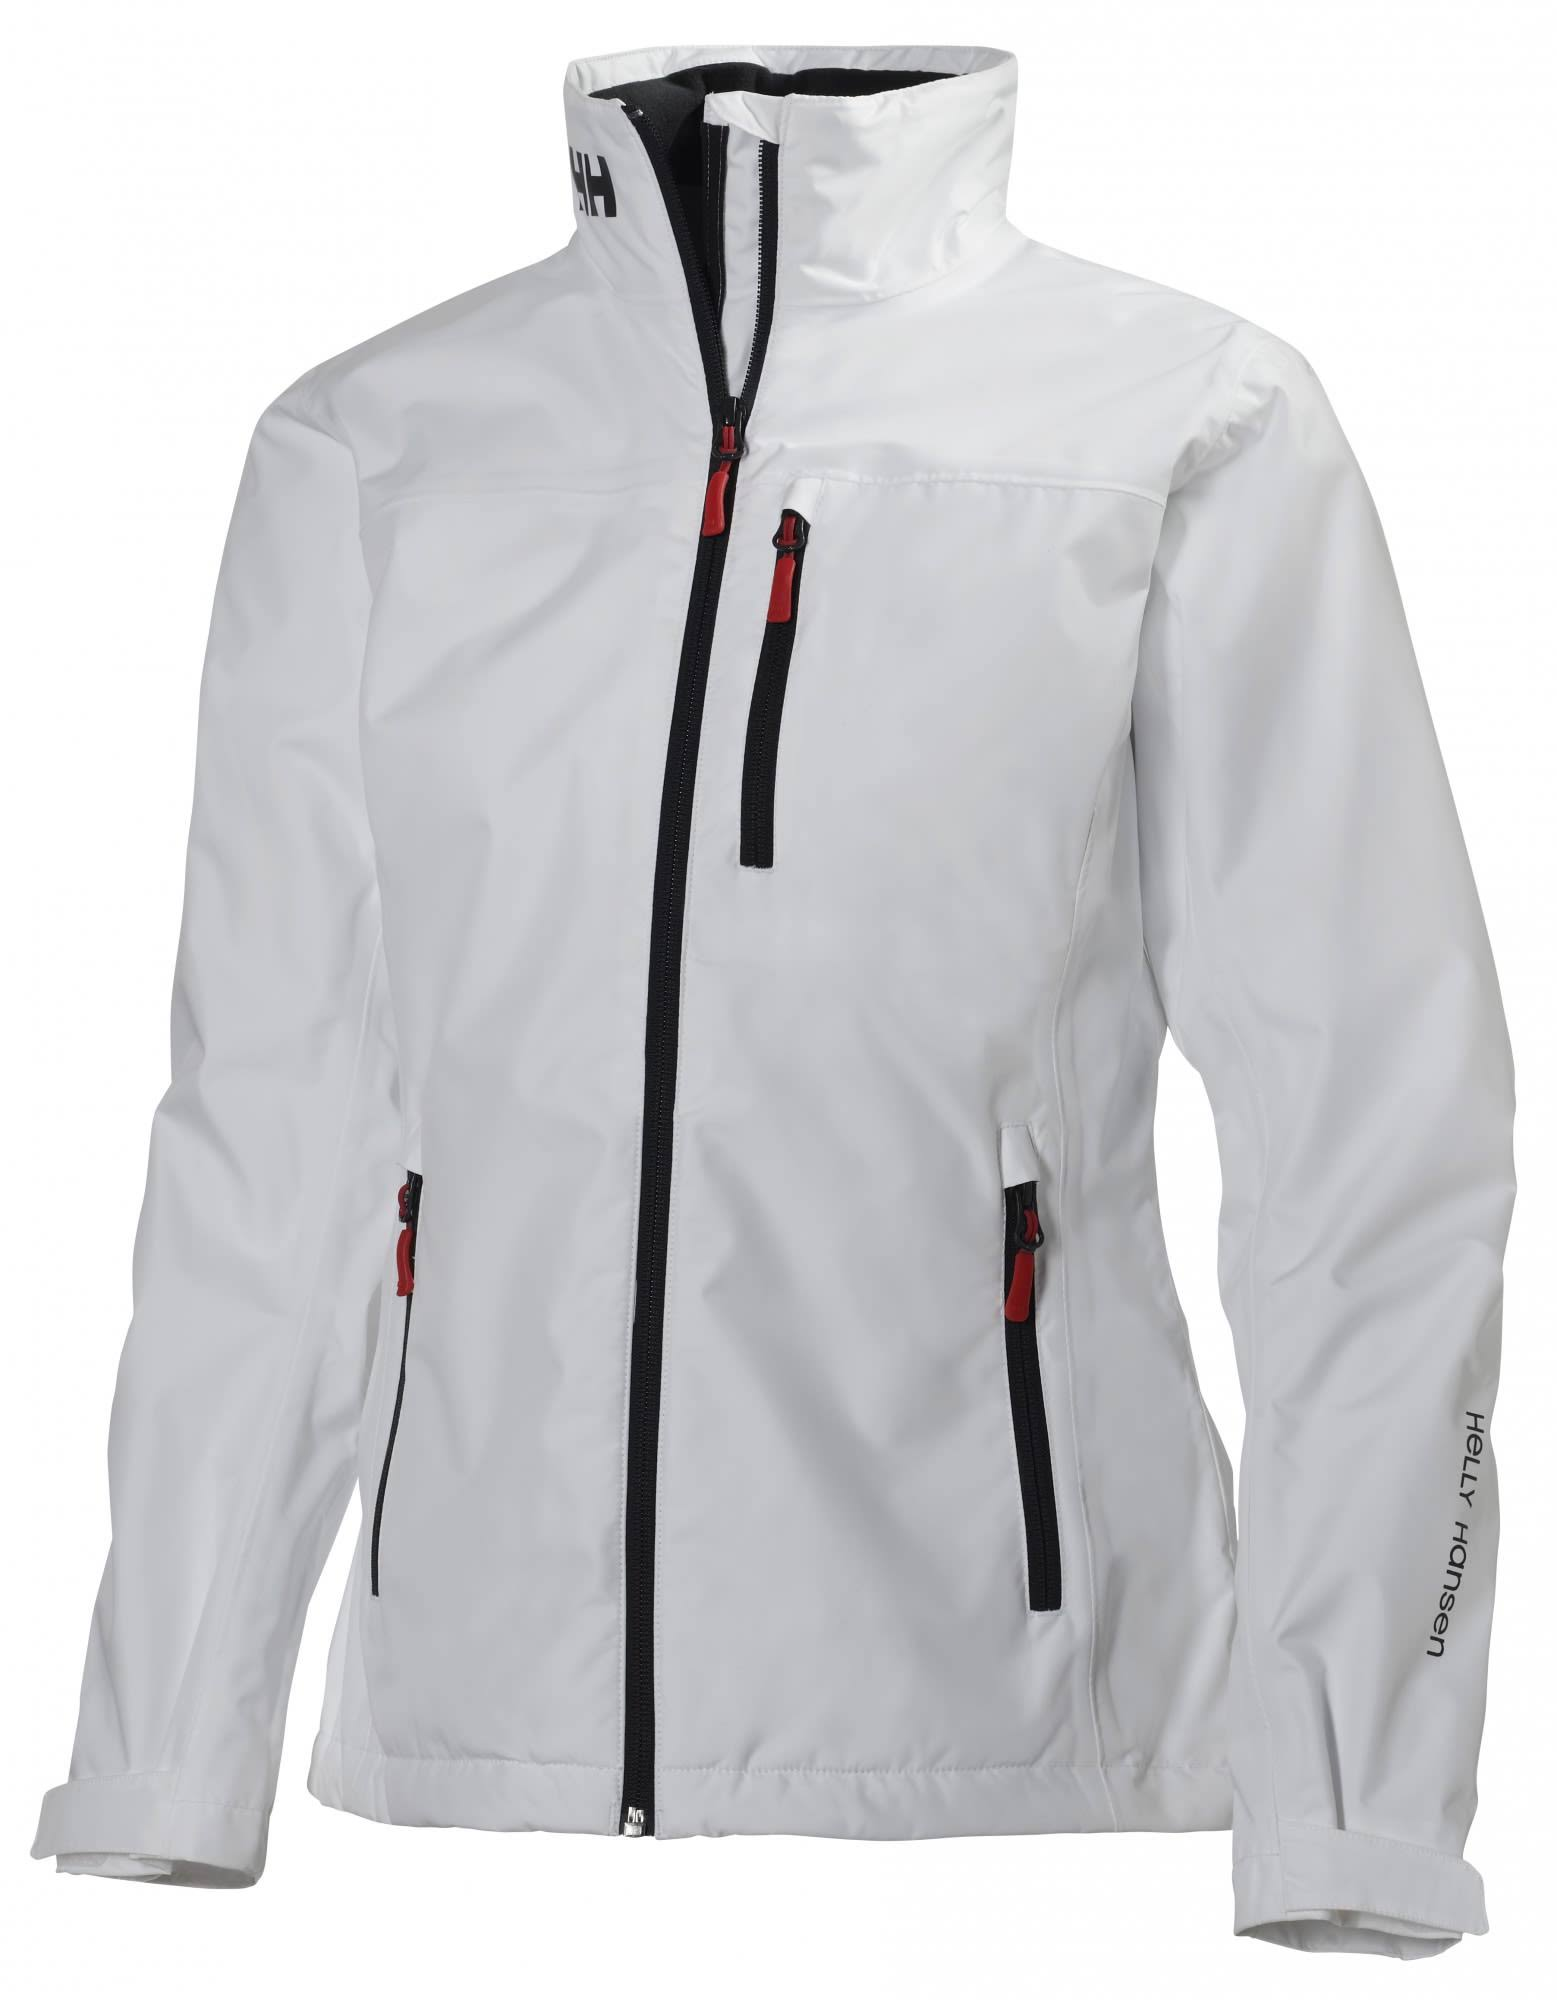 30317 Midlayer Blanco Wp Helly Hansen Crew Chaqueta W Windproof Mujer Regular nCUqxCp8